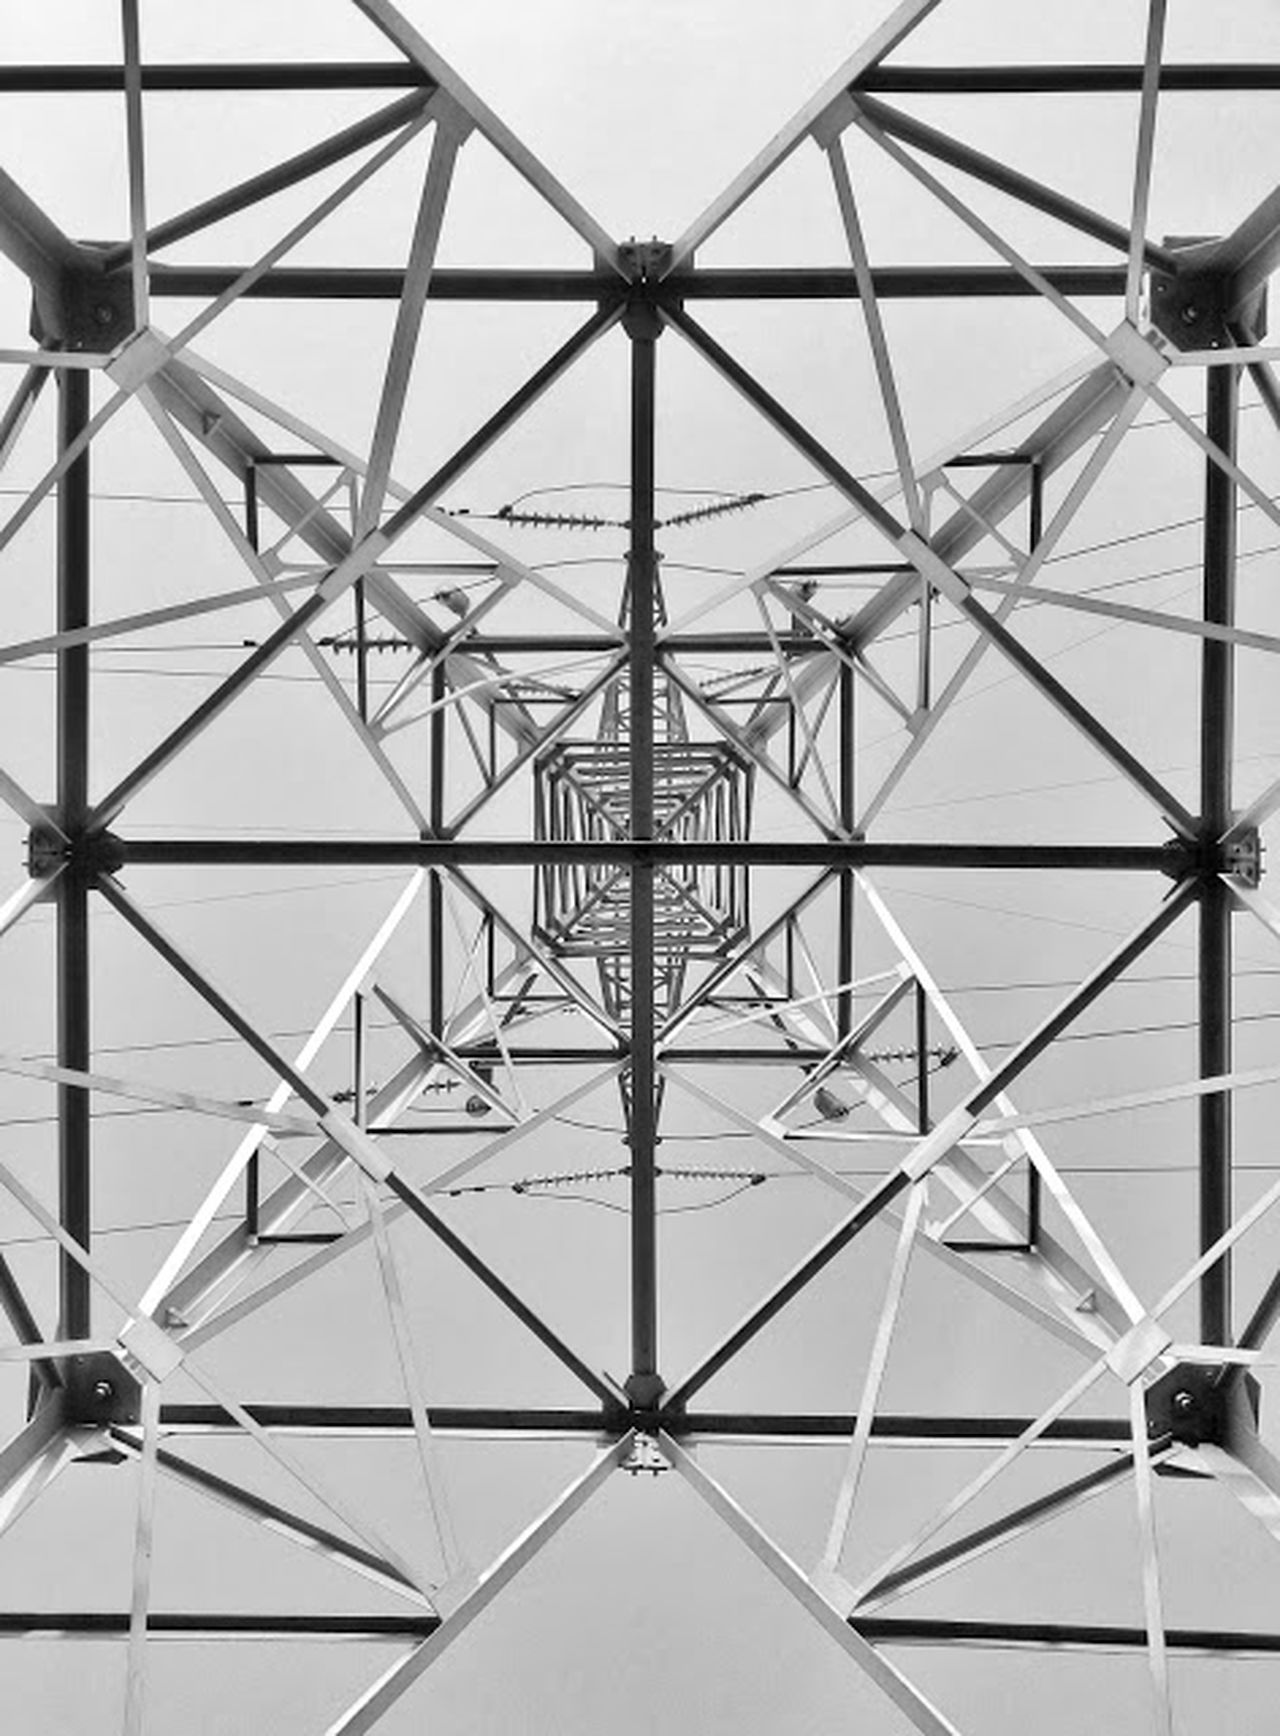 Dassai Architecture Backgrounds Built Structure Close-up Day Electricity  Full Frame Girder Indoors  Low Angle View No People Pattern Sky Steel Symmetry Technology